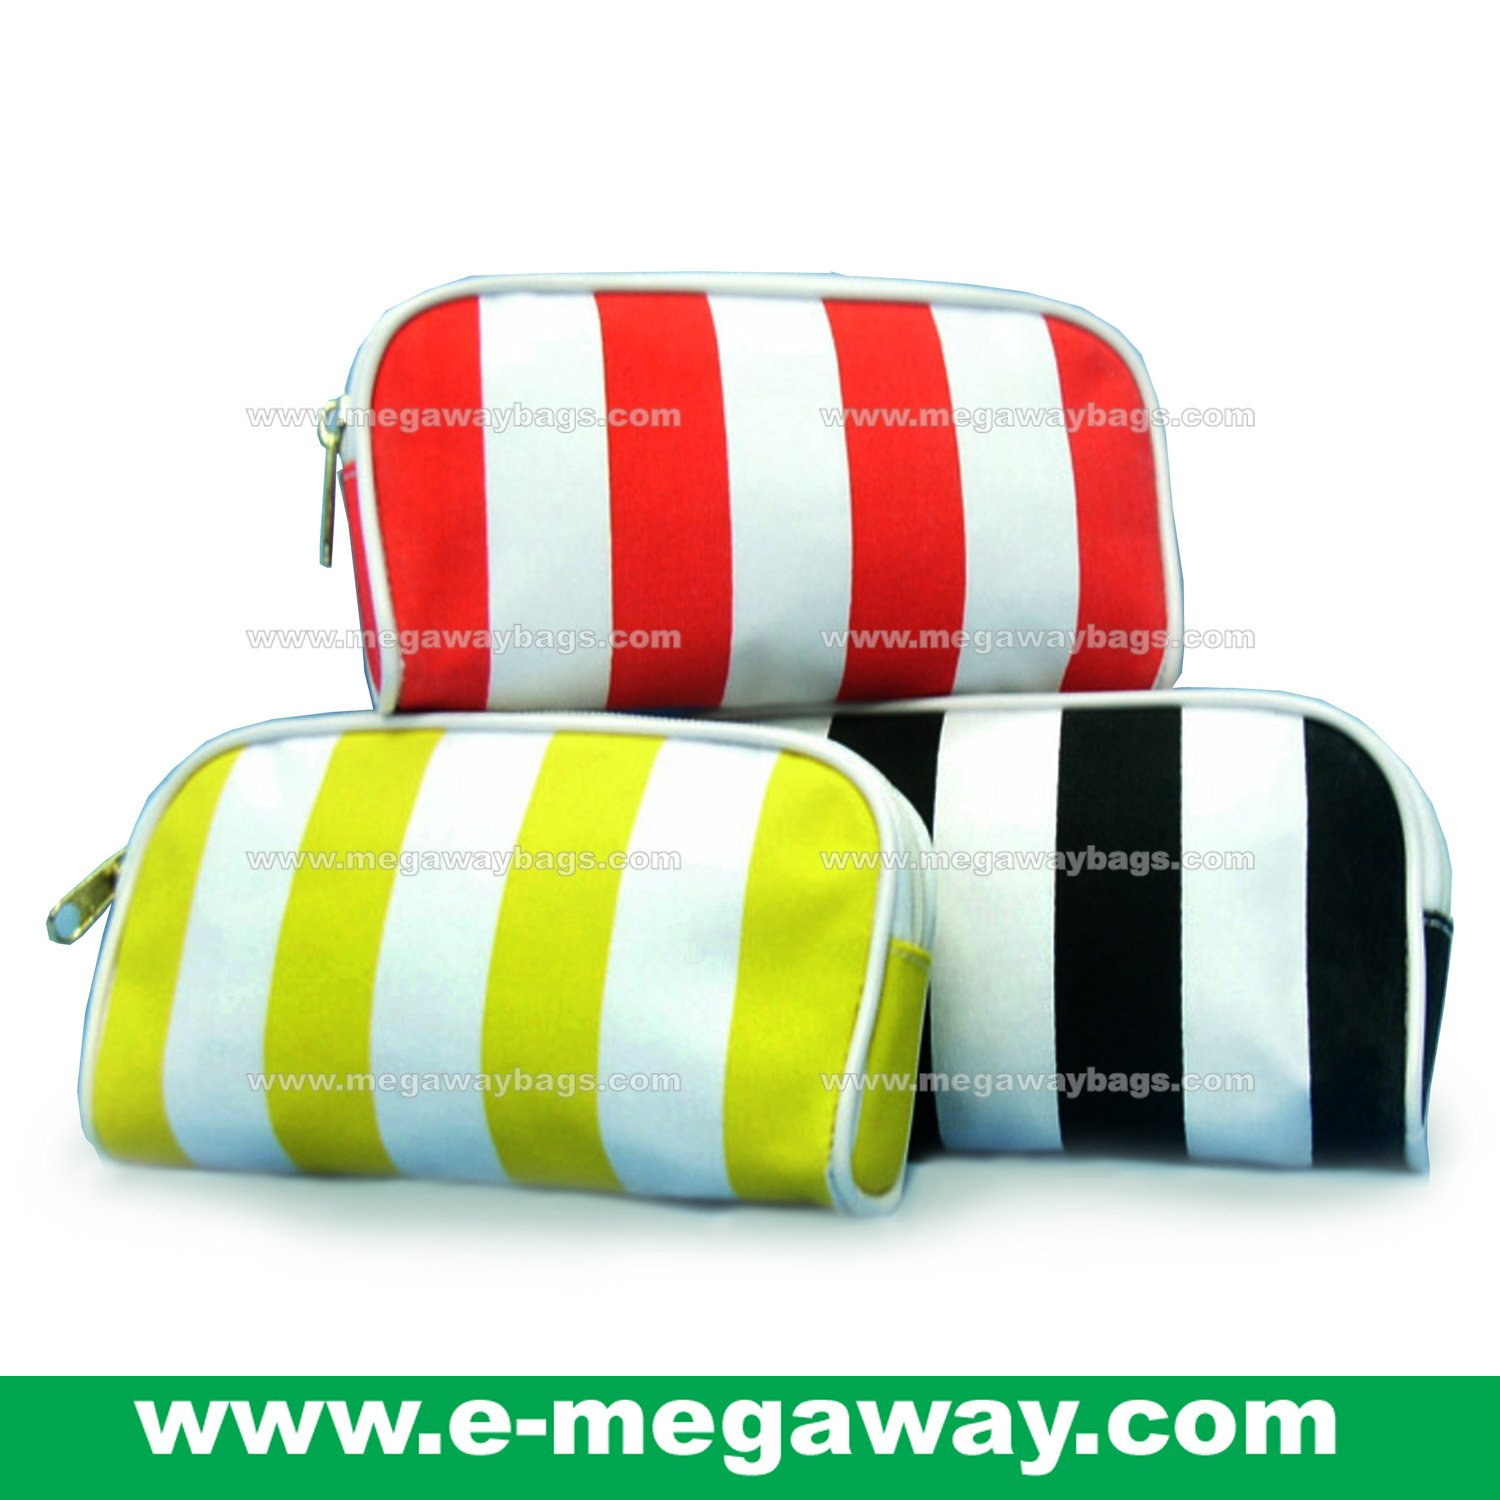 Beauty Amenity Cosmetics Bags Case Sac Pouch Wallets Stripe Printed MegawayBags #CC-0837